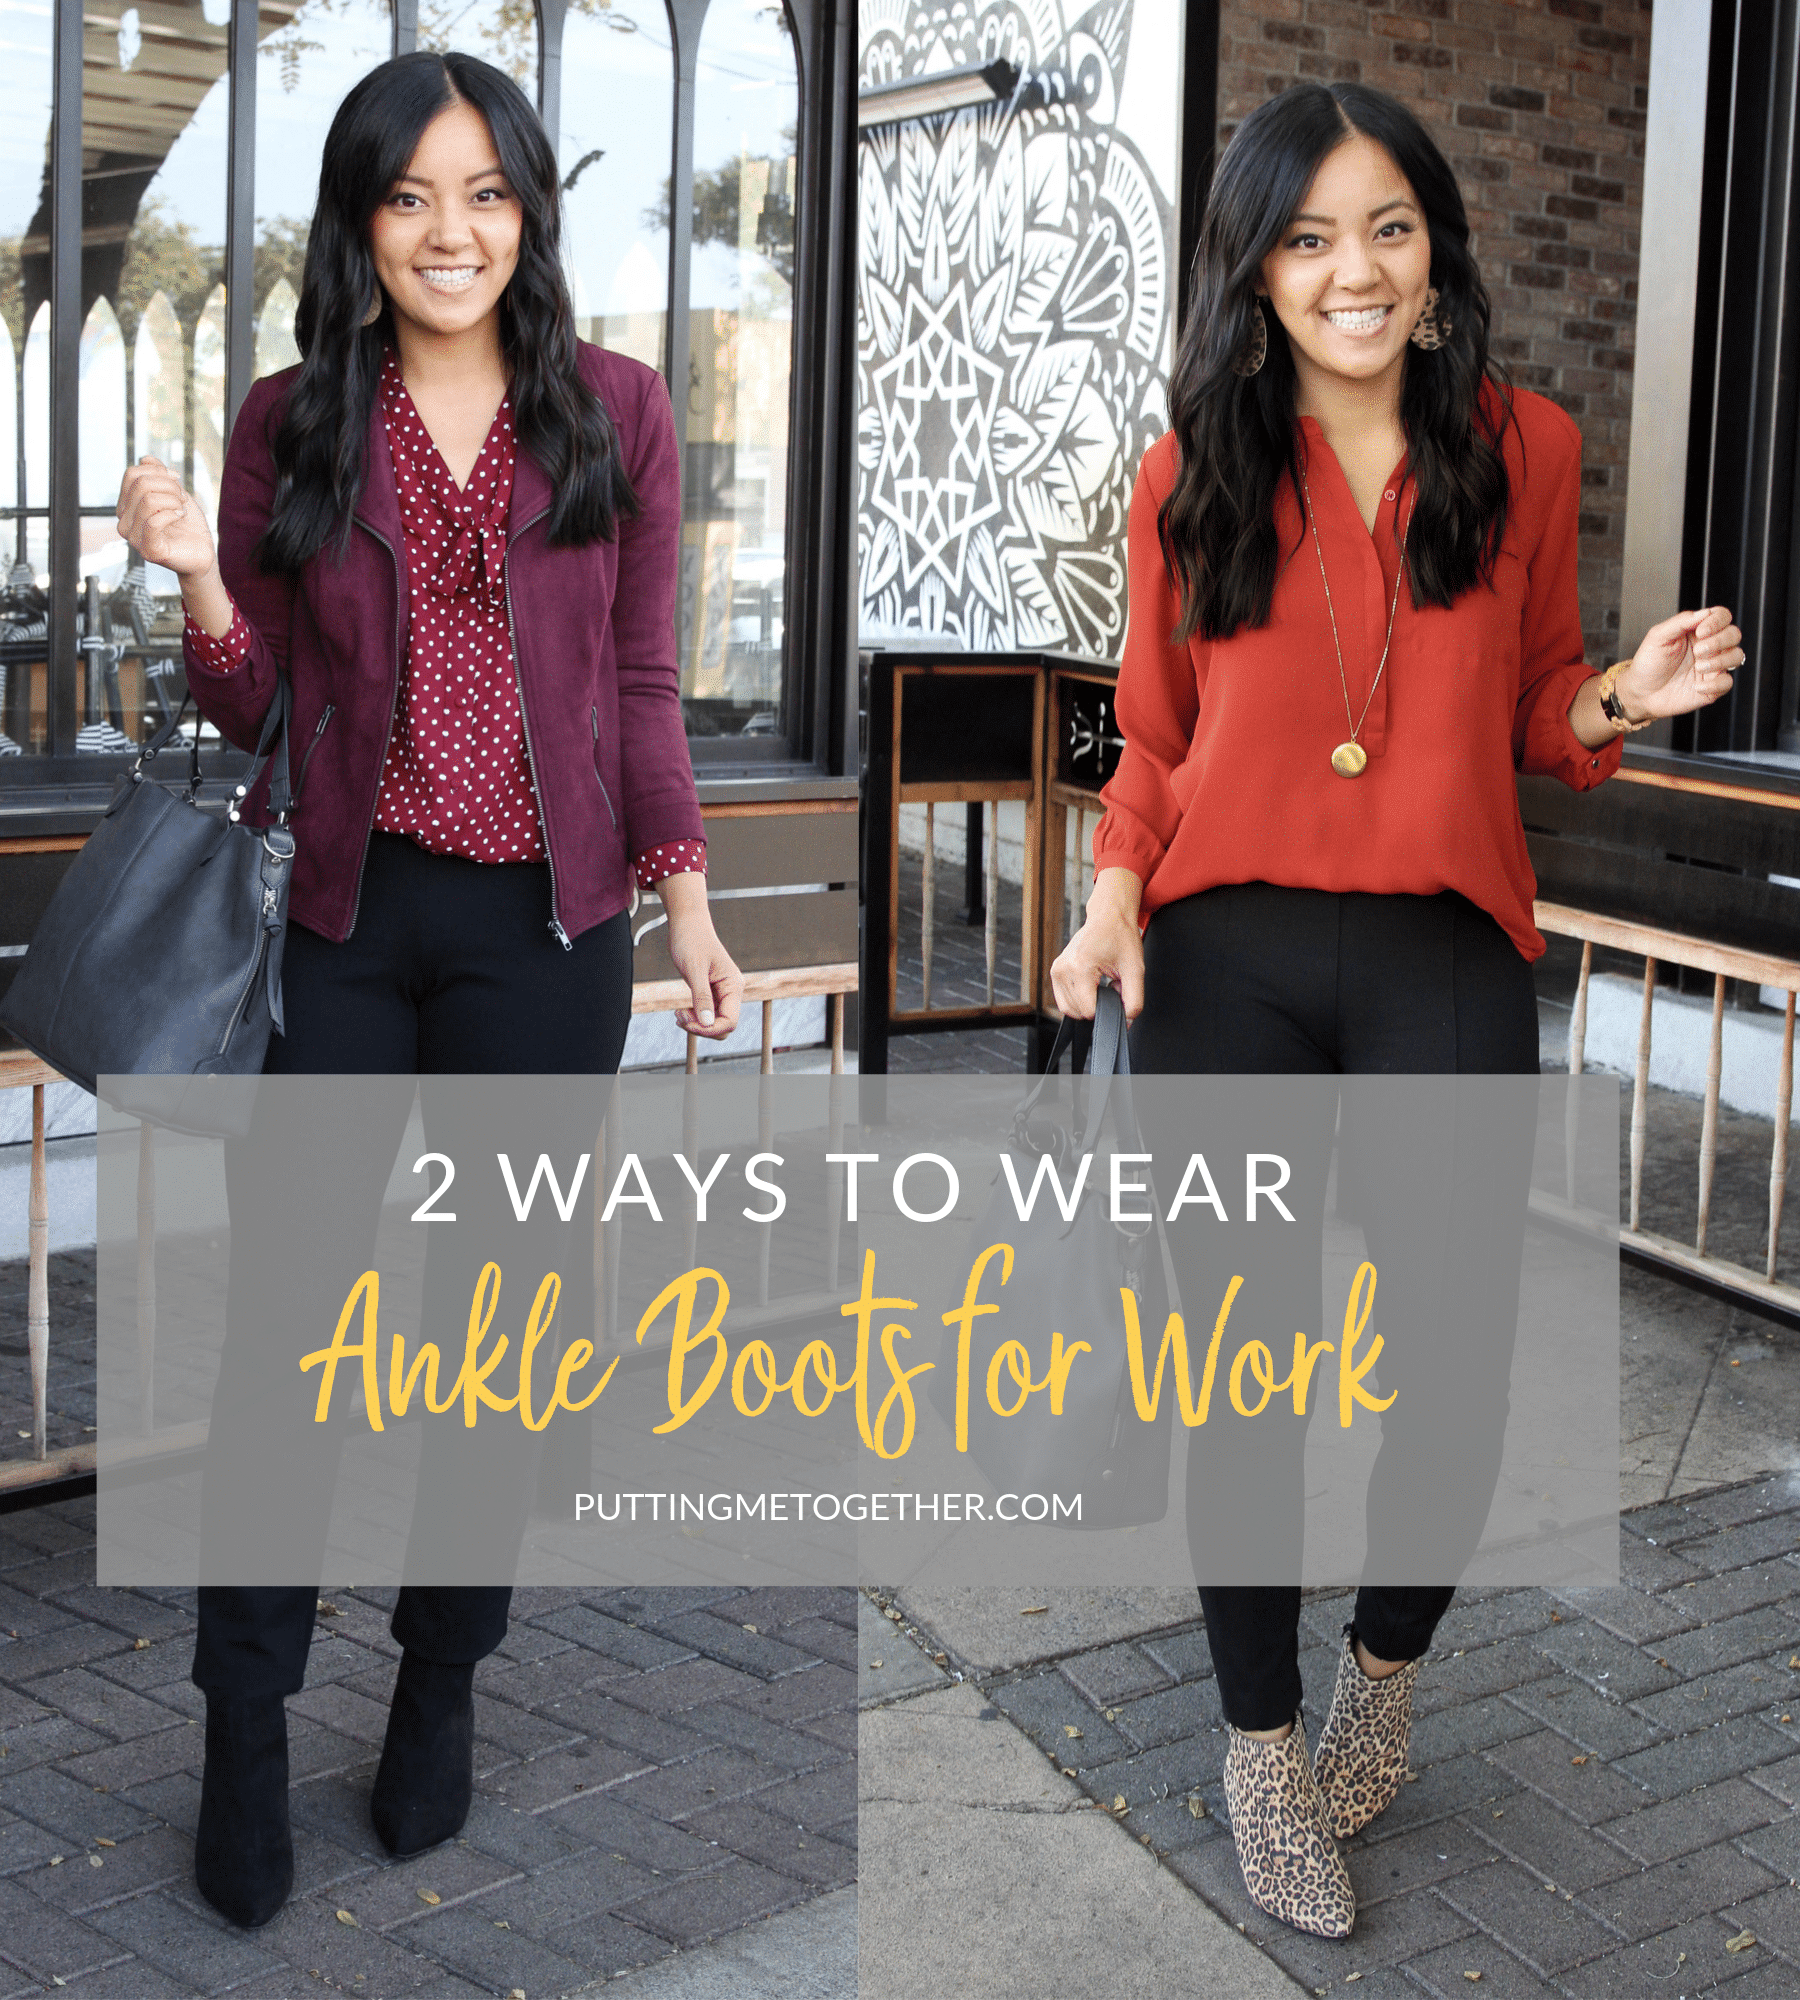 2 Ways to Wear Ankle Boots for Work